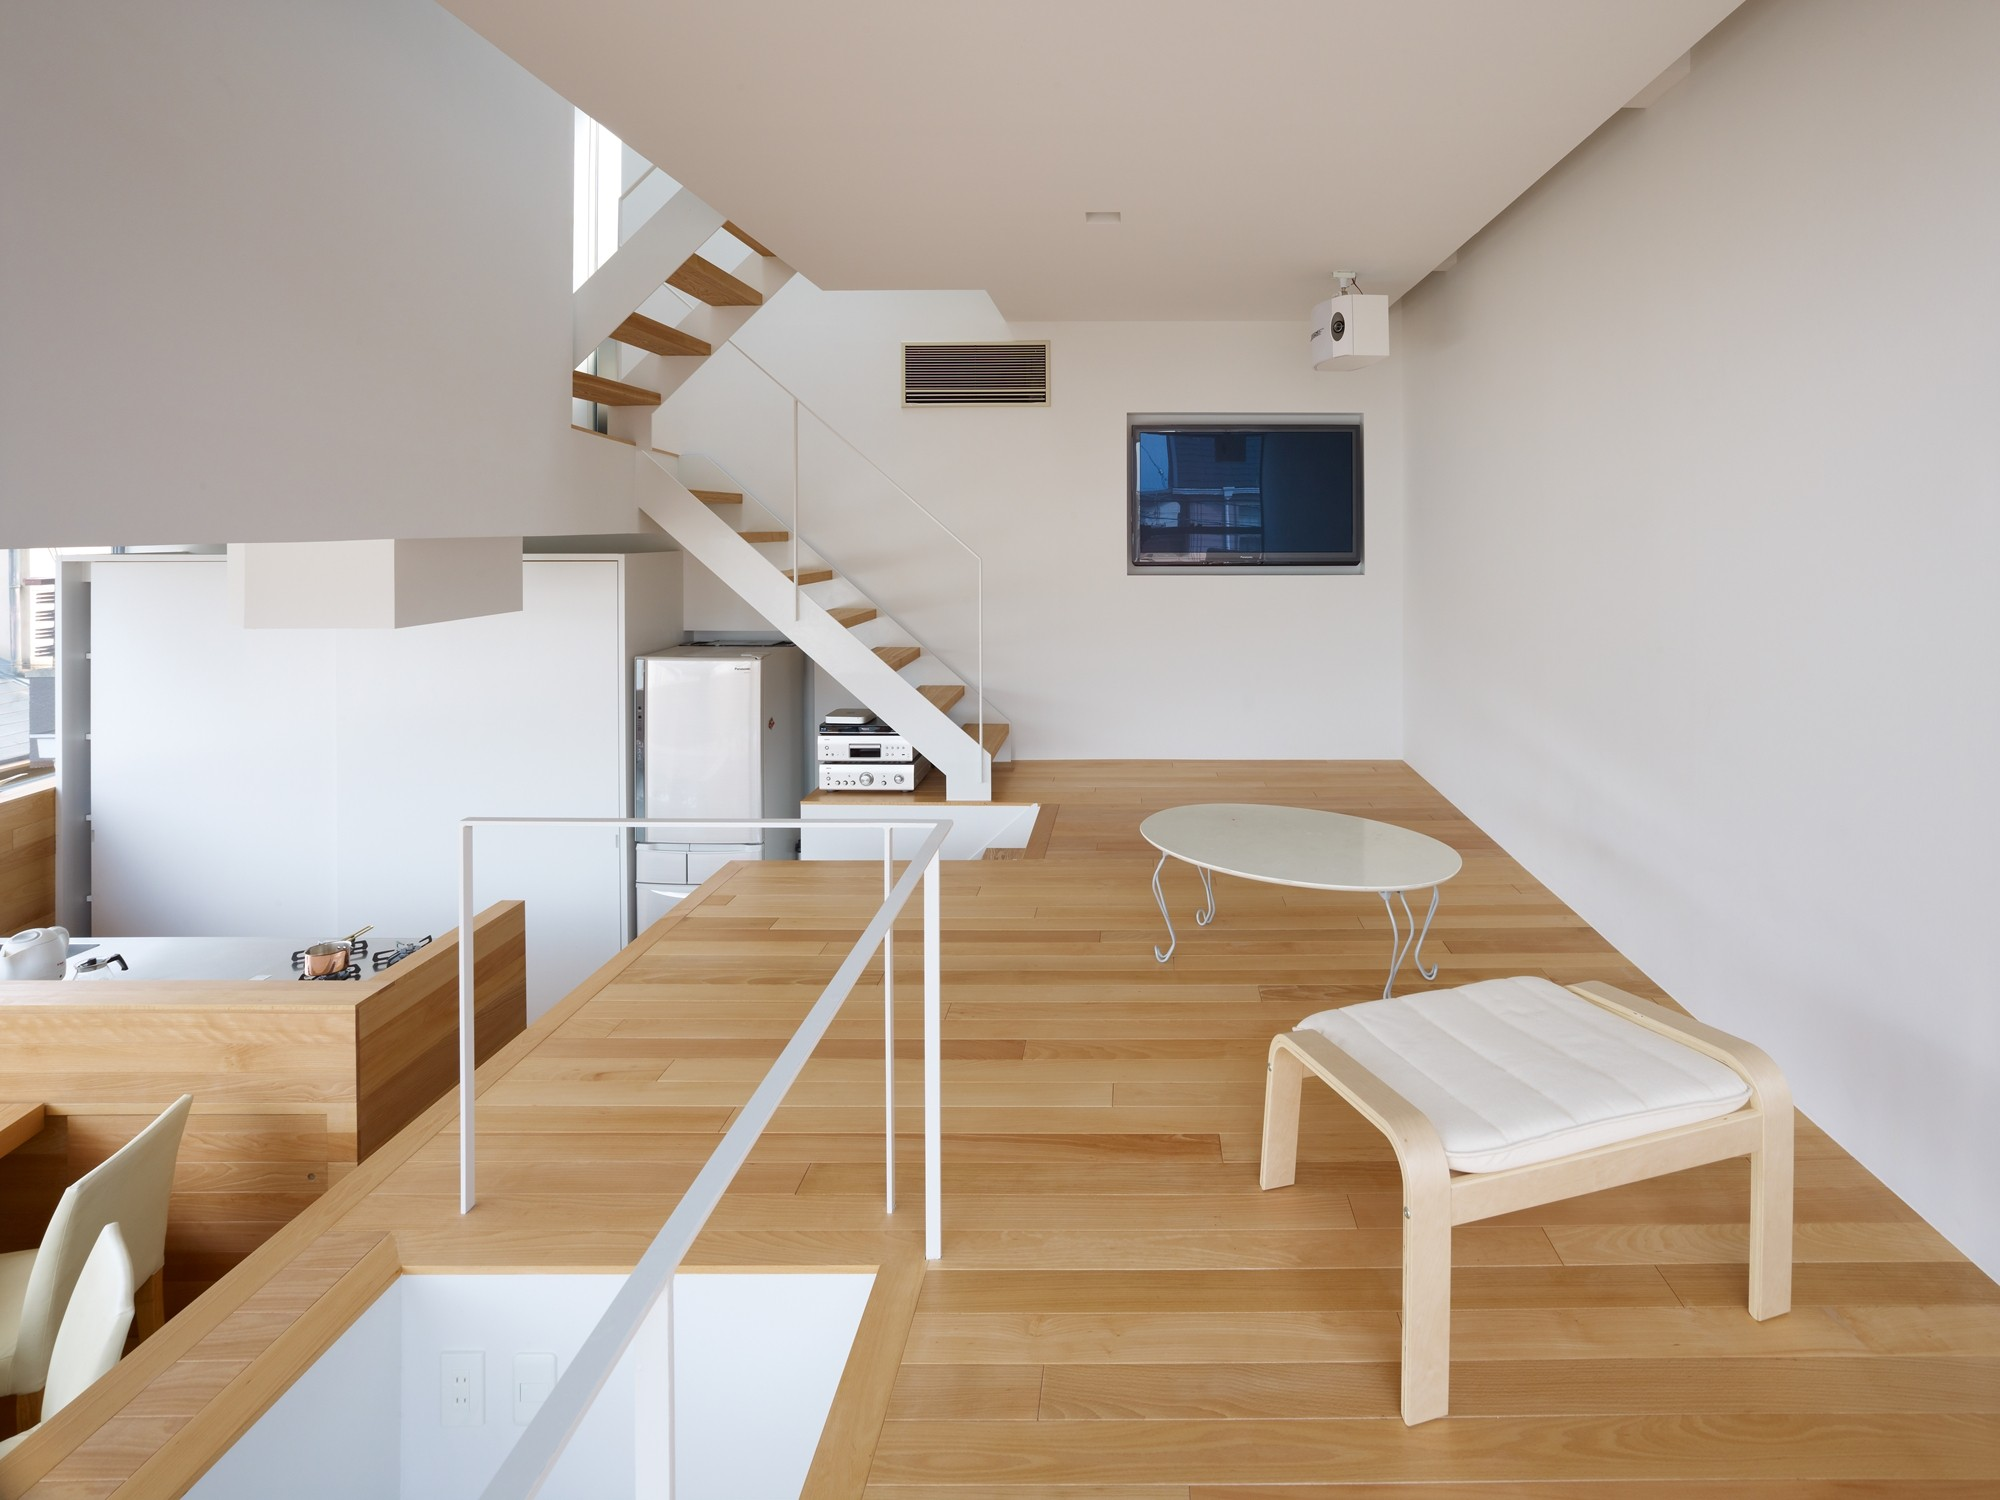 Meuble Coppin Gallery Of House In Matubara Fujiwaramuro Architects 5